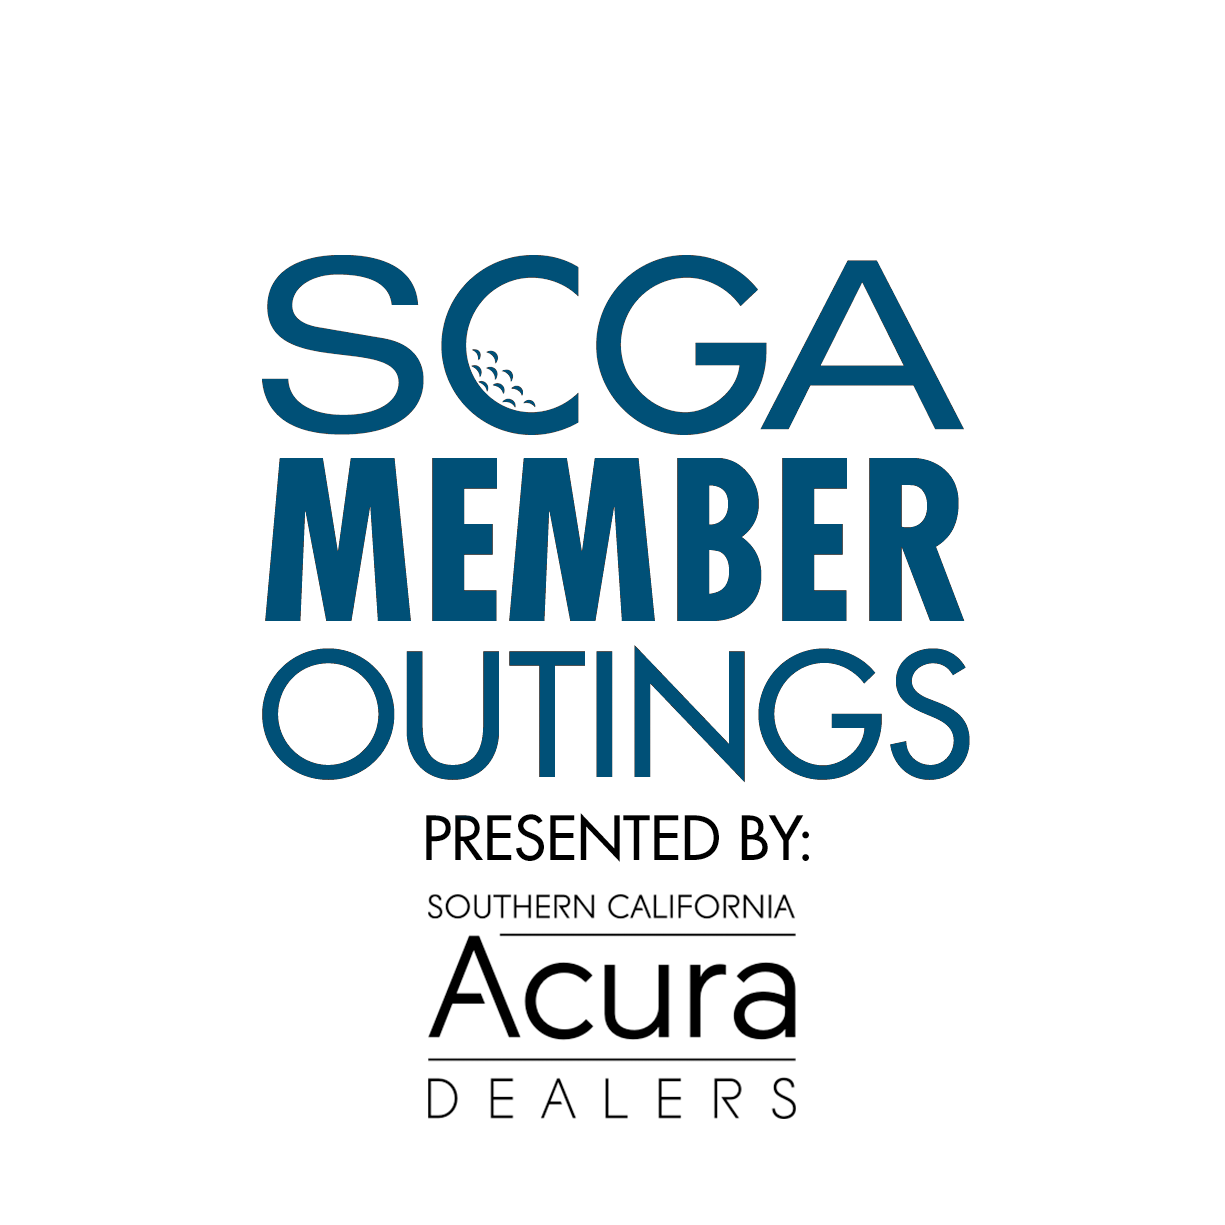 SCGA Member Outings